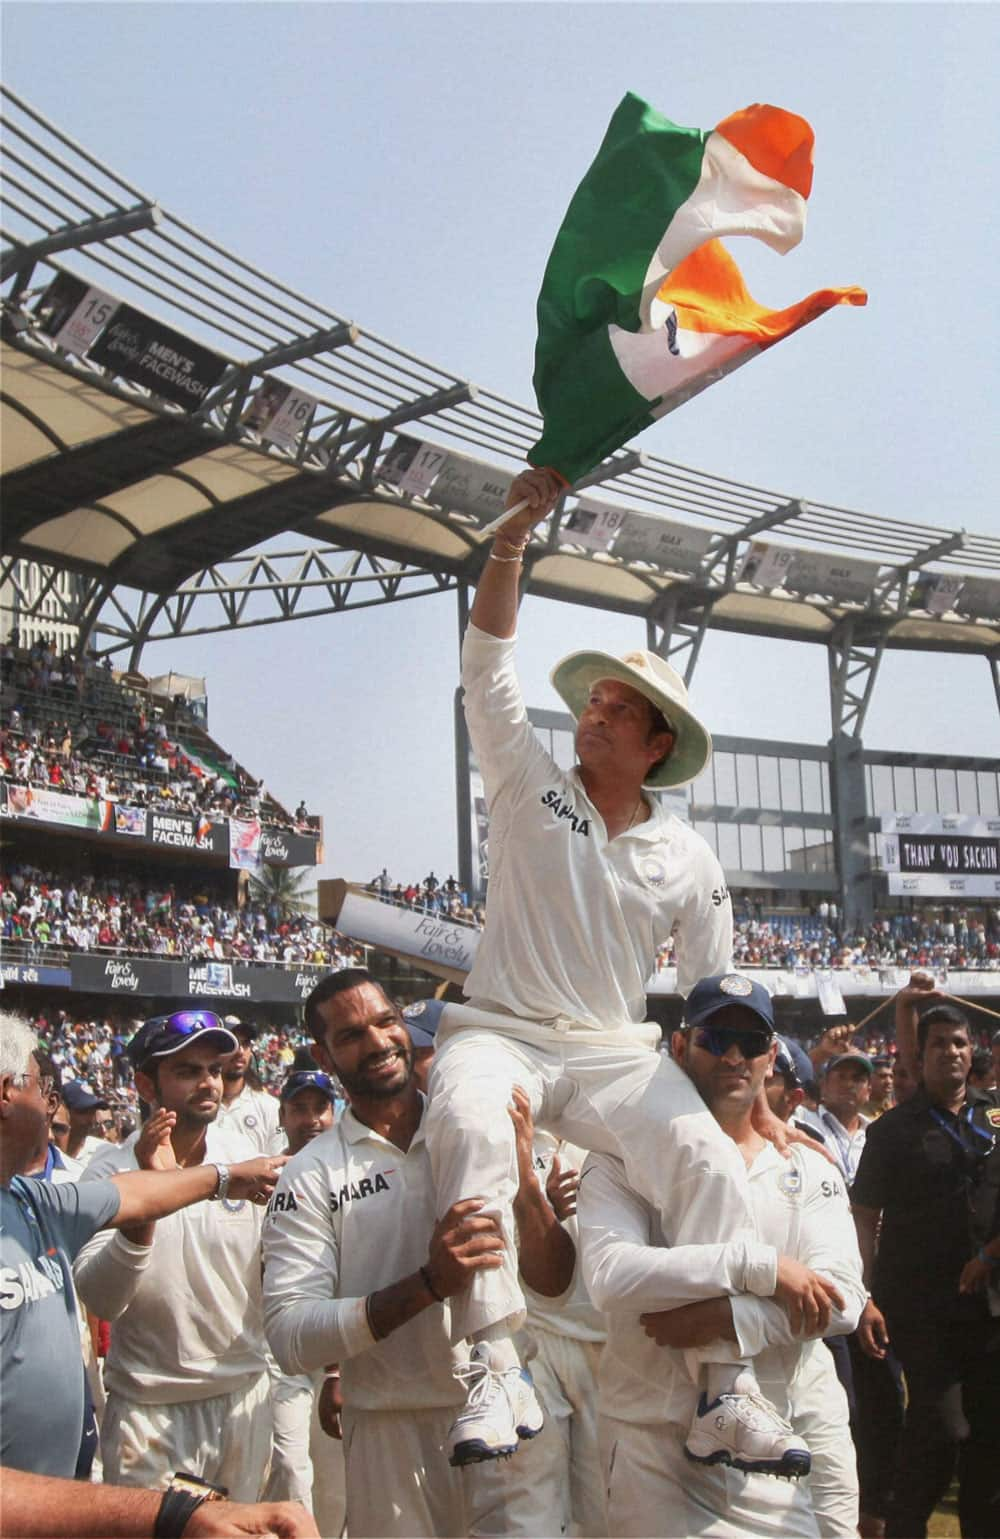 Sachin Tendulkar is given a farewell lap by his team mates as they carry him on his shoulders after he bid a tearful adieu to International Cricket at Wankhede Stadium in Mumbai.